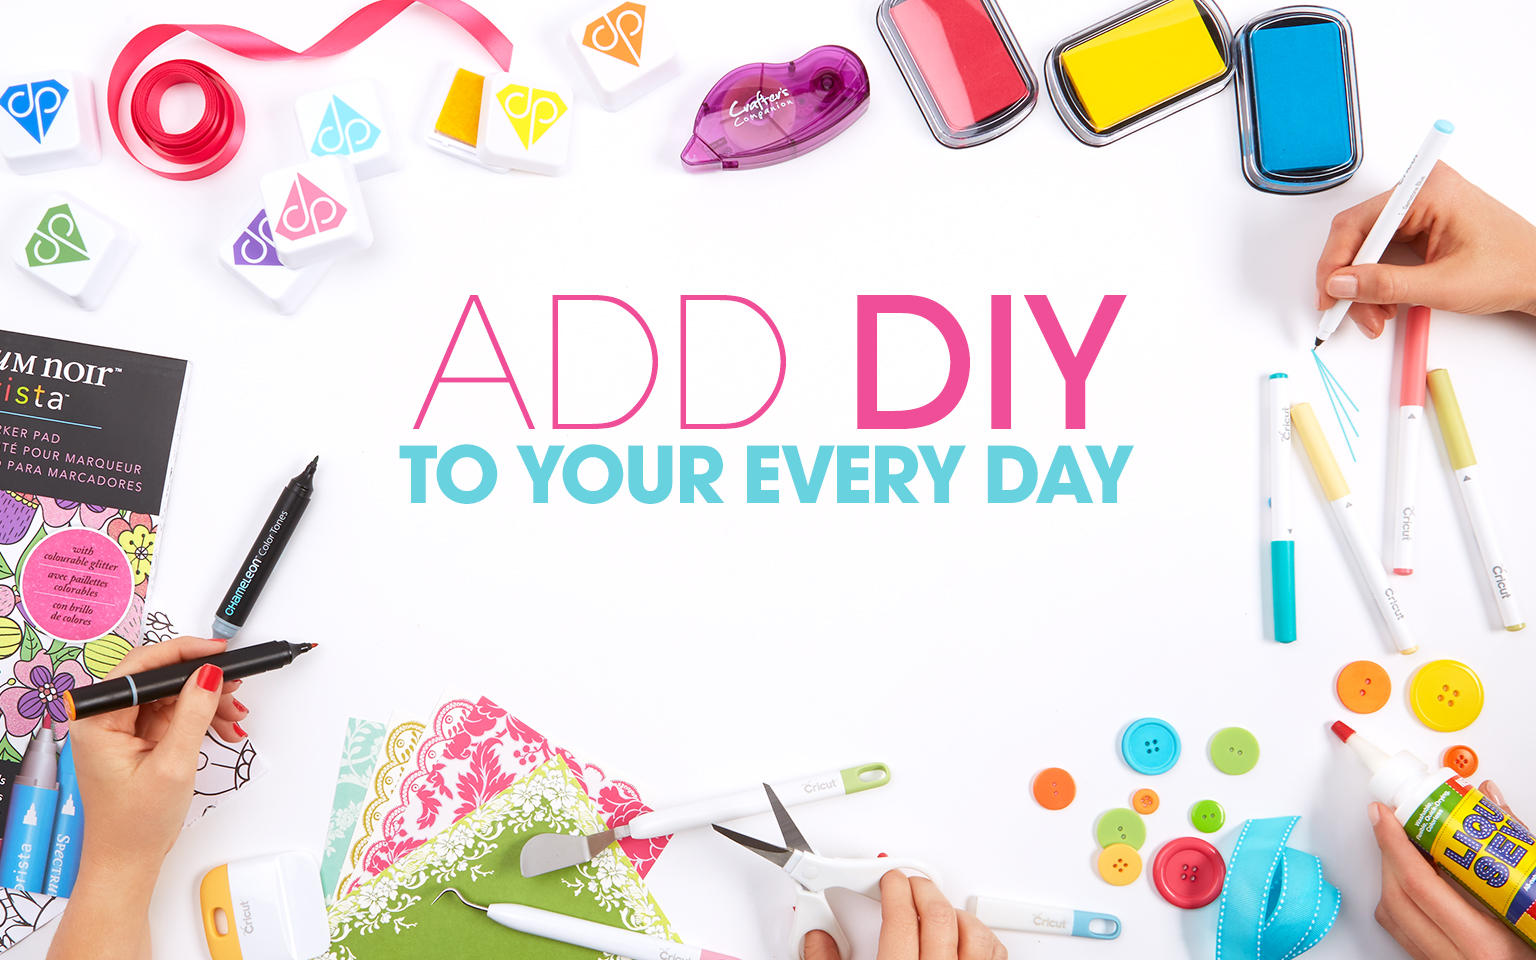 Add D I Y to your everyday: Craft essentials for every project at every price